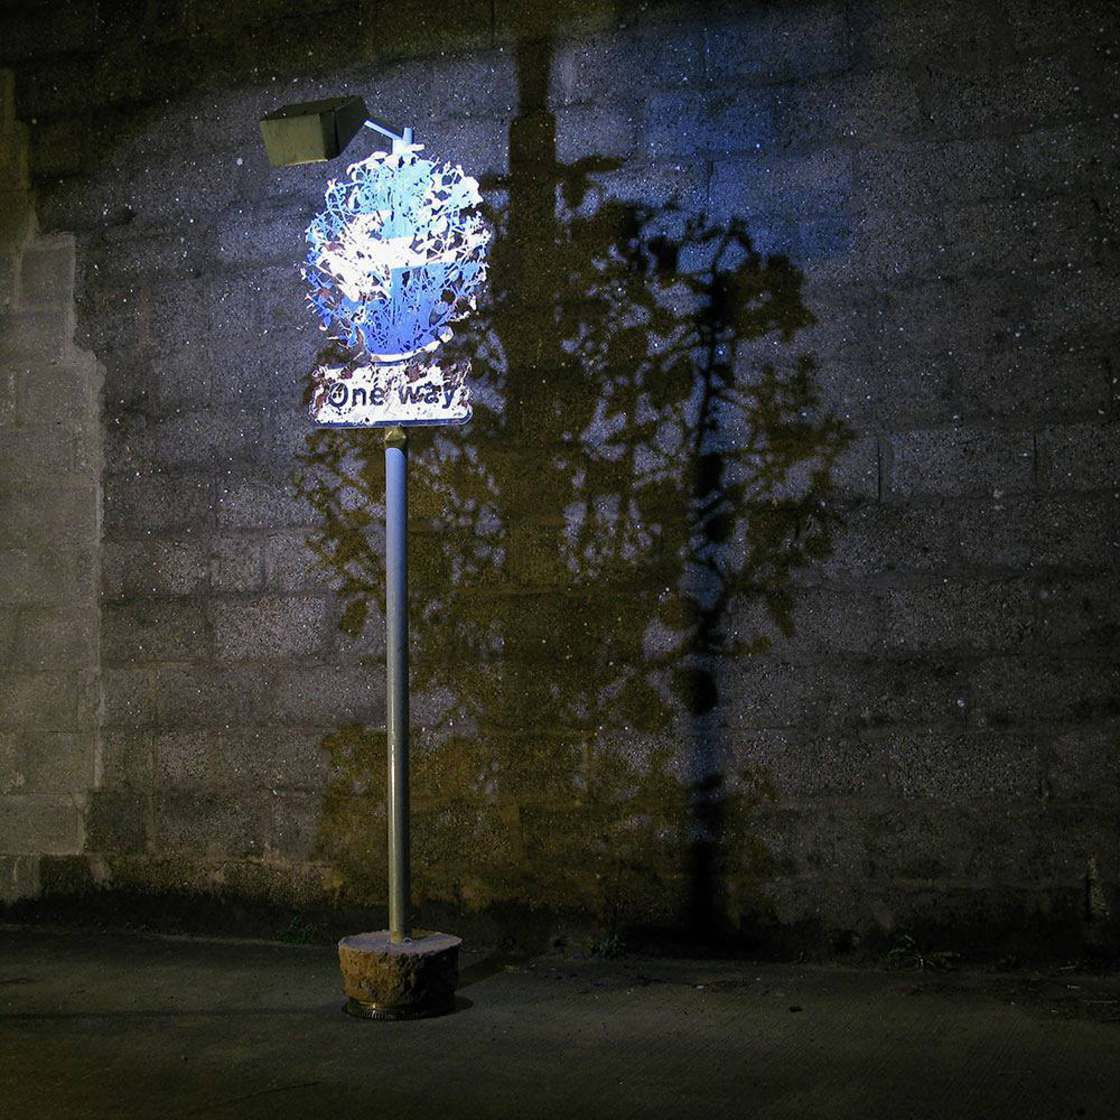 This artist transforms abandoned scrap metal into delicate plants!